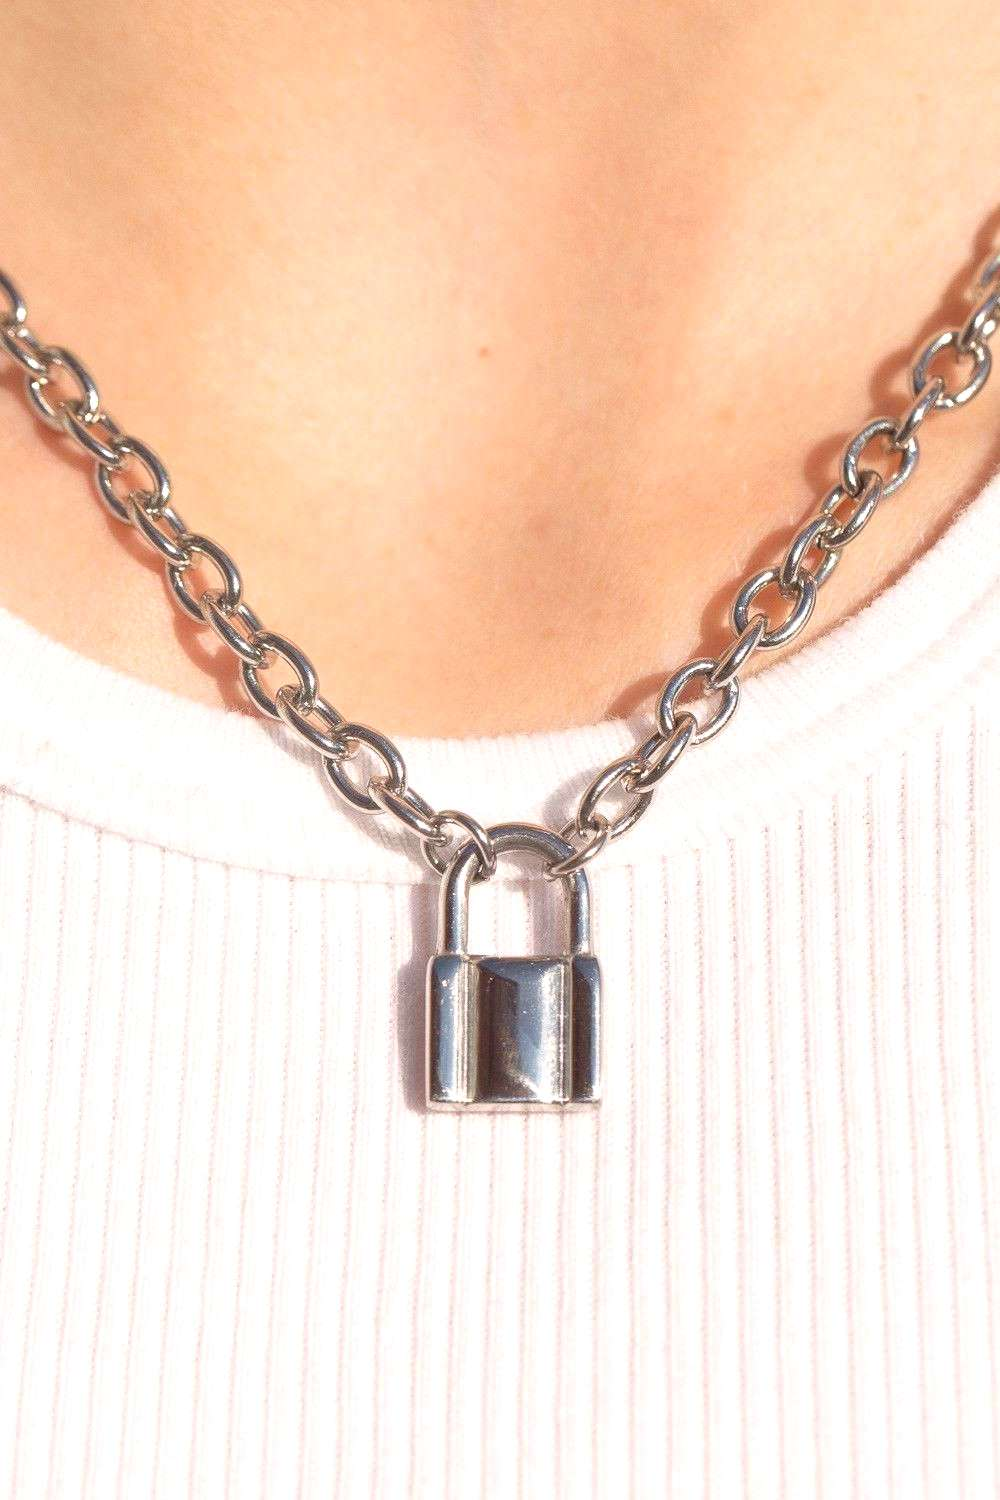 Silver Lock Chain Necklace - Necklaces - Jewelry - Accessories